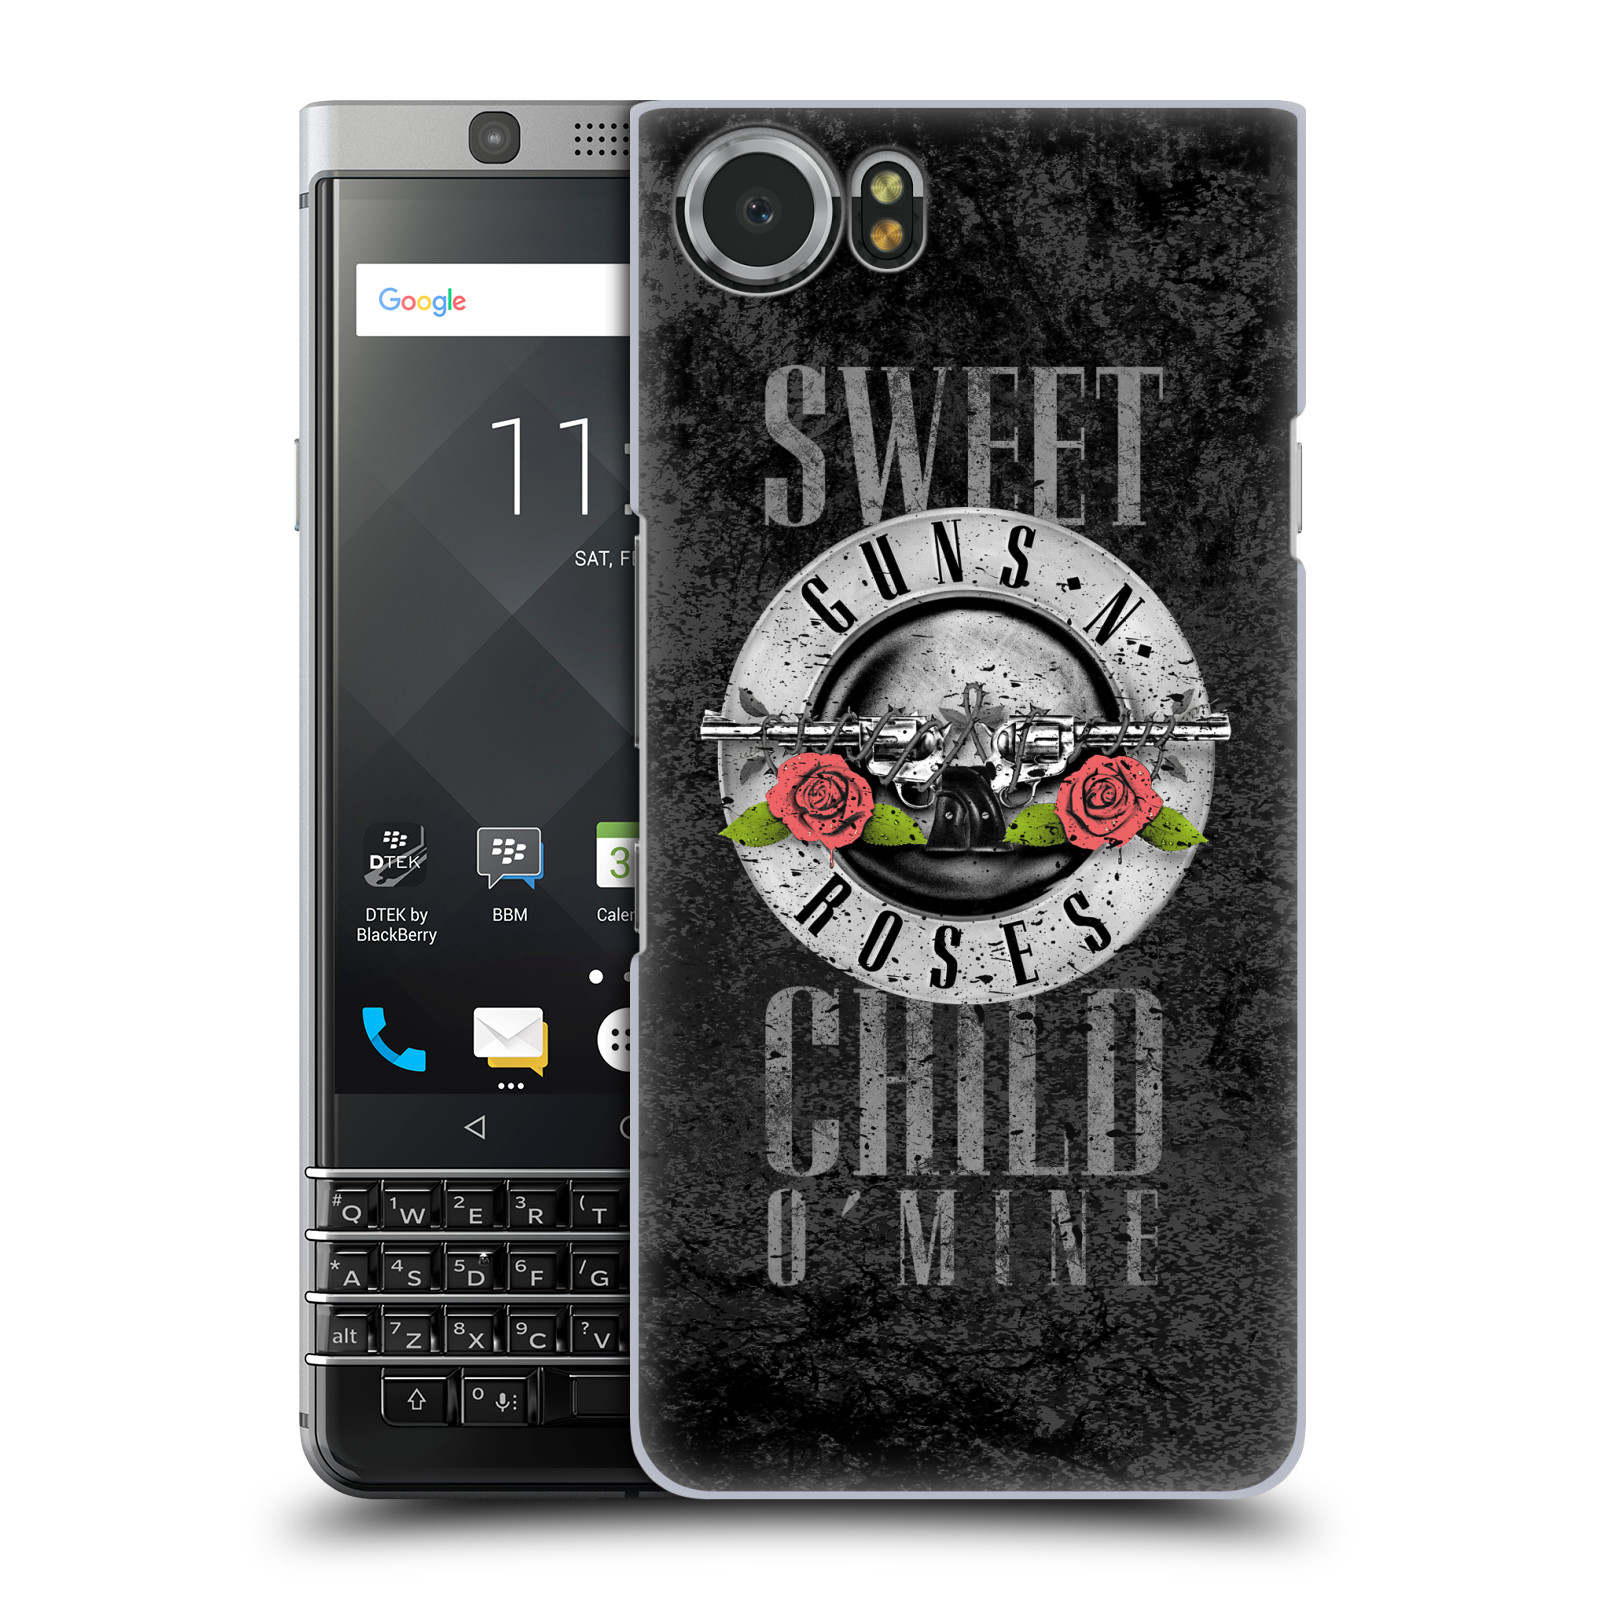 Plastové pouzdro na mobil BlackBerry KEYone - Head Case - Guns N' Roses - Sweet Child